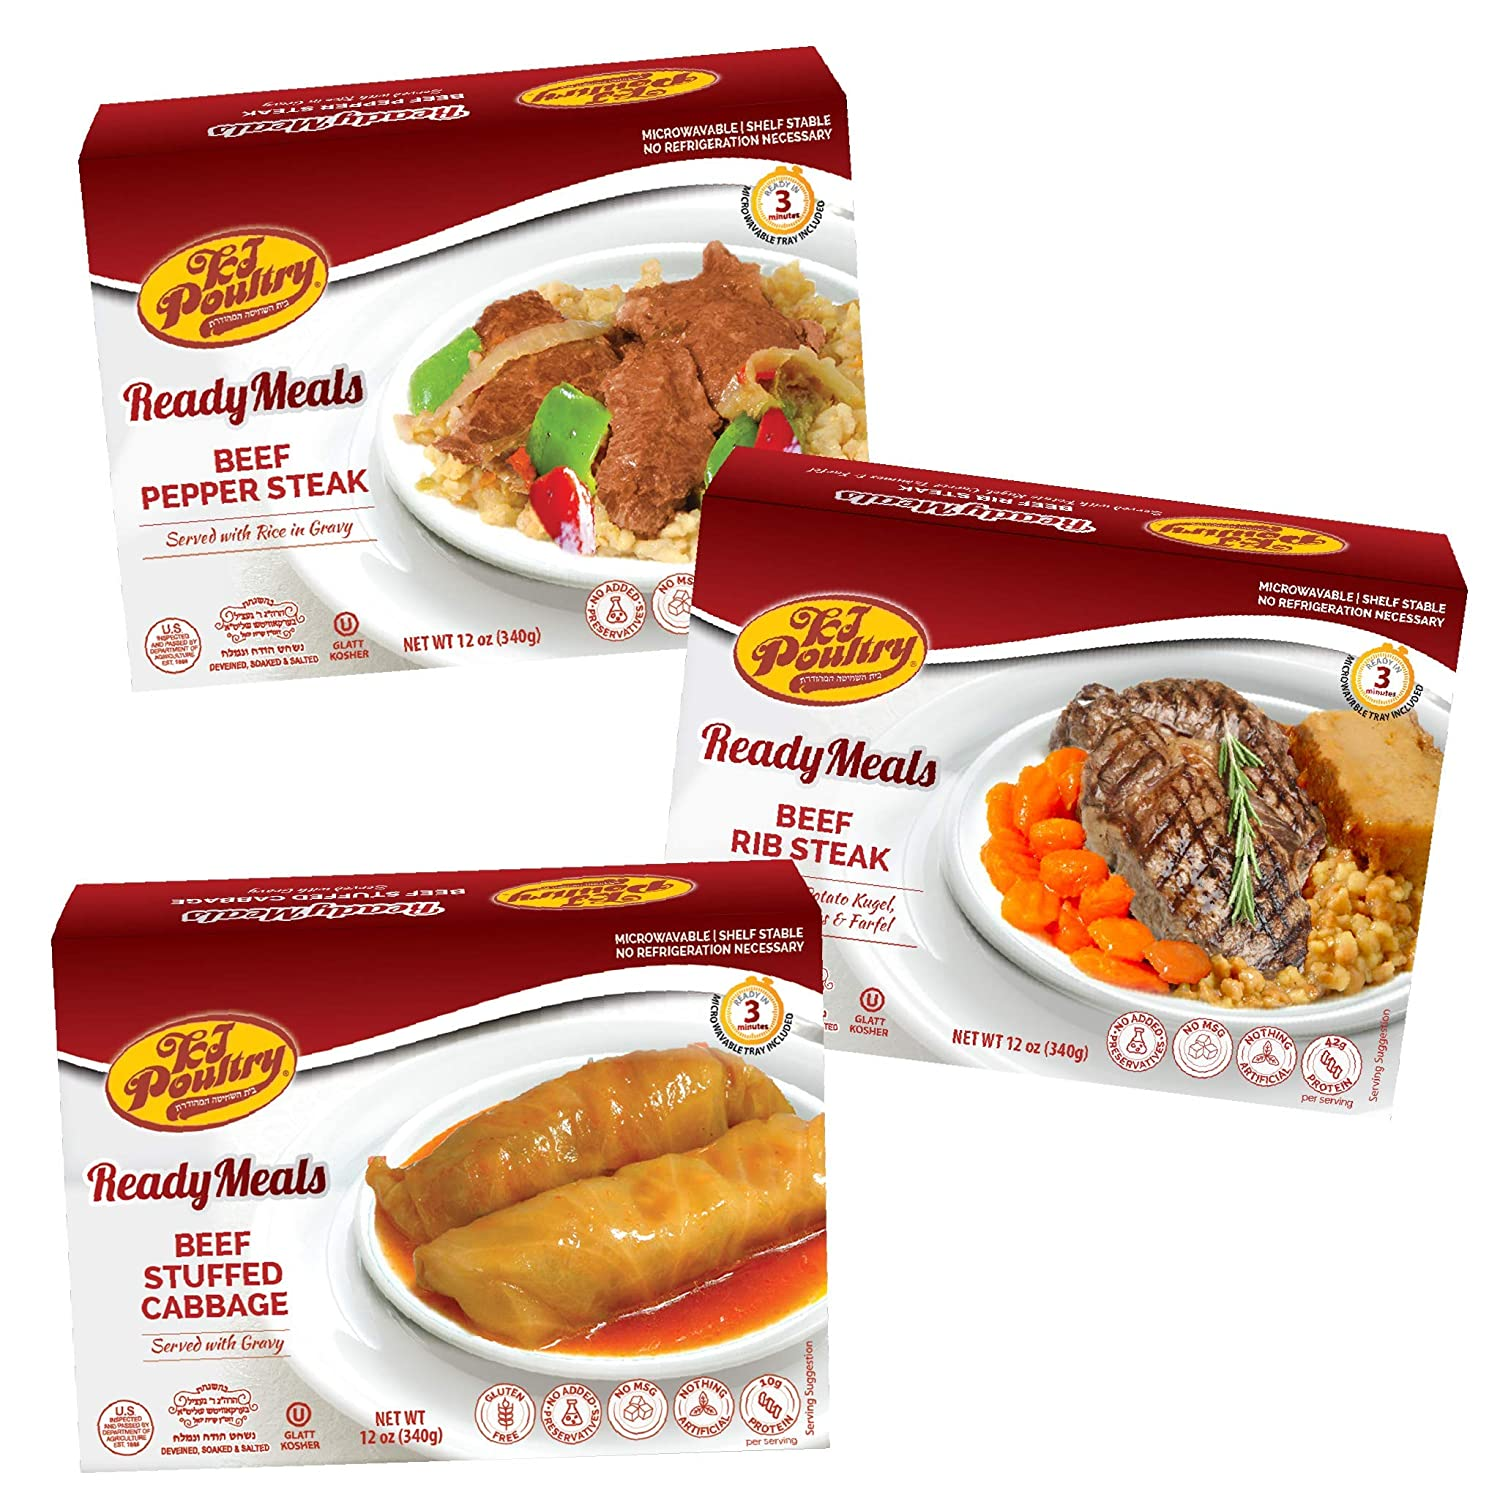 Kosher Mre Meat Meals Ready to Eat, Variety of Beef Pepper Steak, Beef Rib Steak, Stuffed Cabbage Rolls (3 Pack Bundle) - Prepared Entree Fully Cooked, Shelf Stable Microwave Dinner